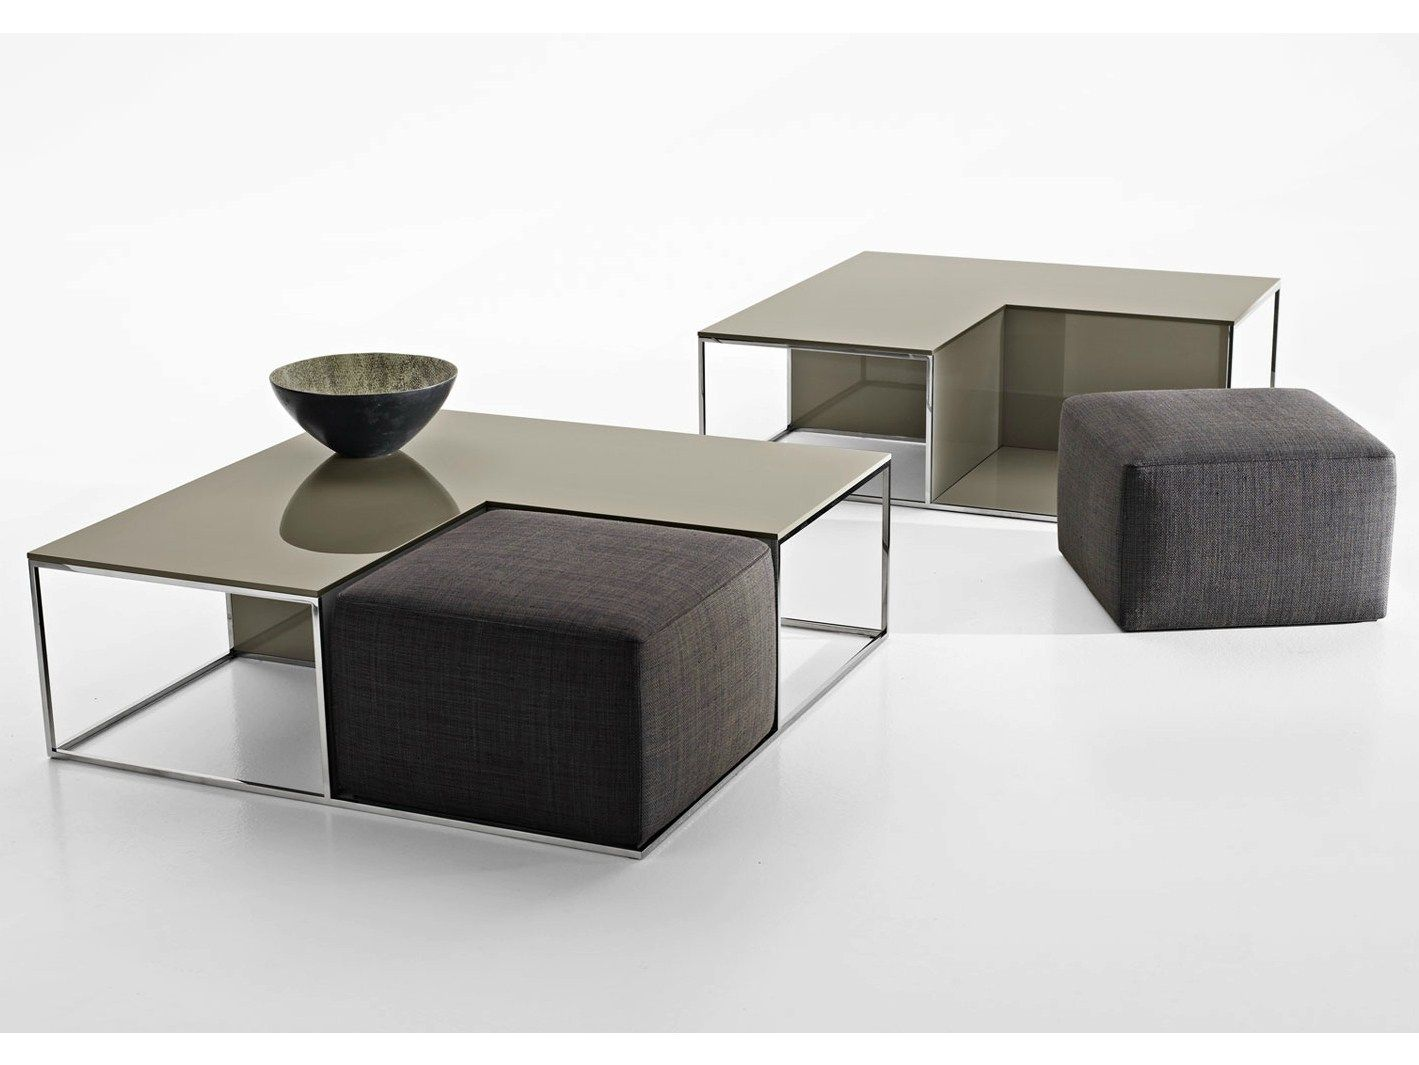 coffee table with poufs - google search | omar's studio